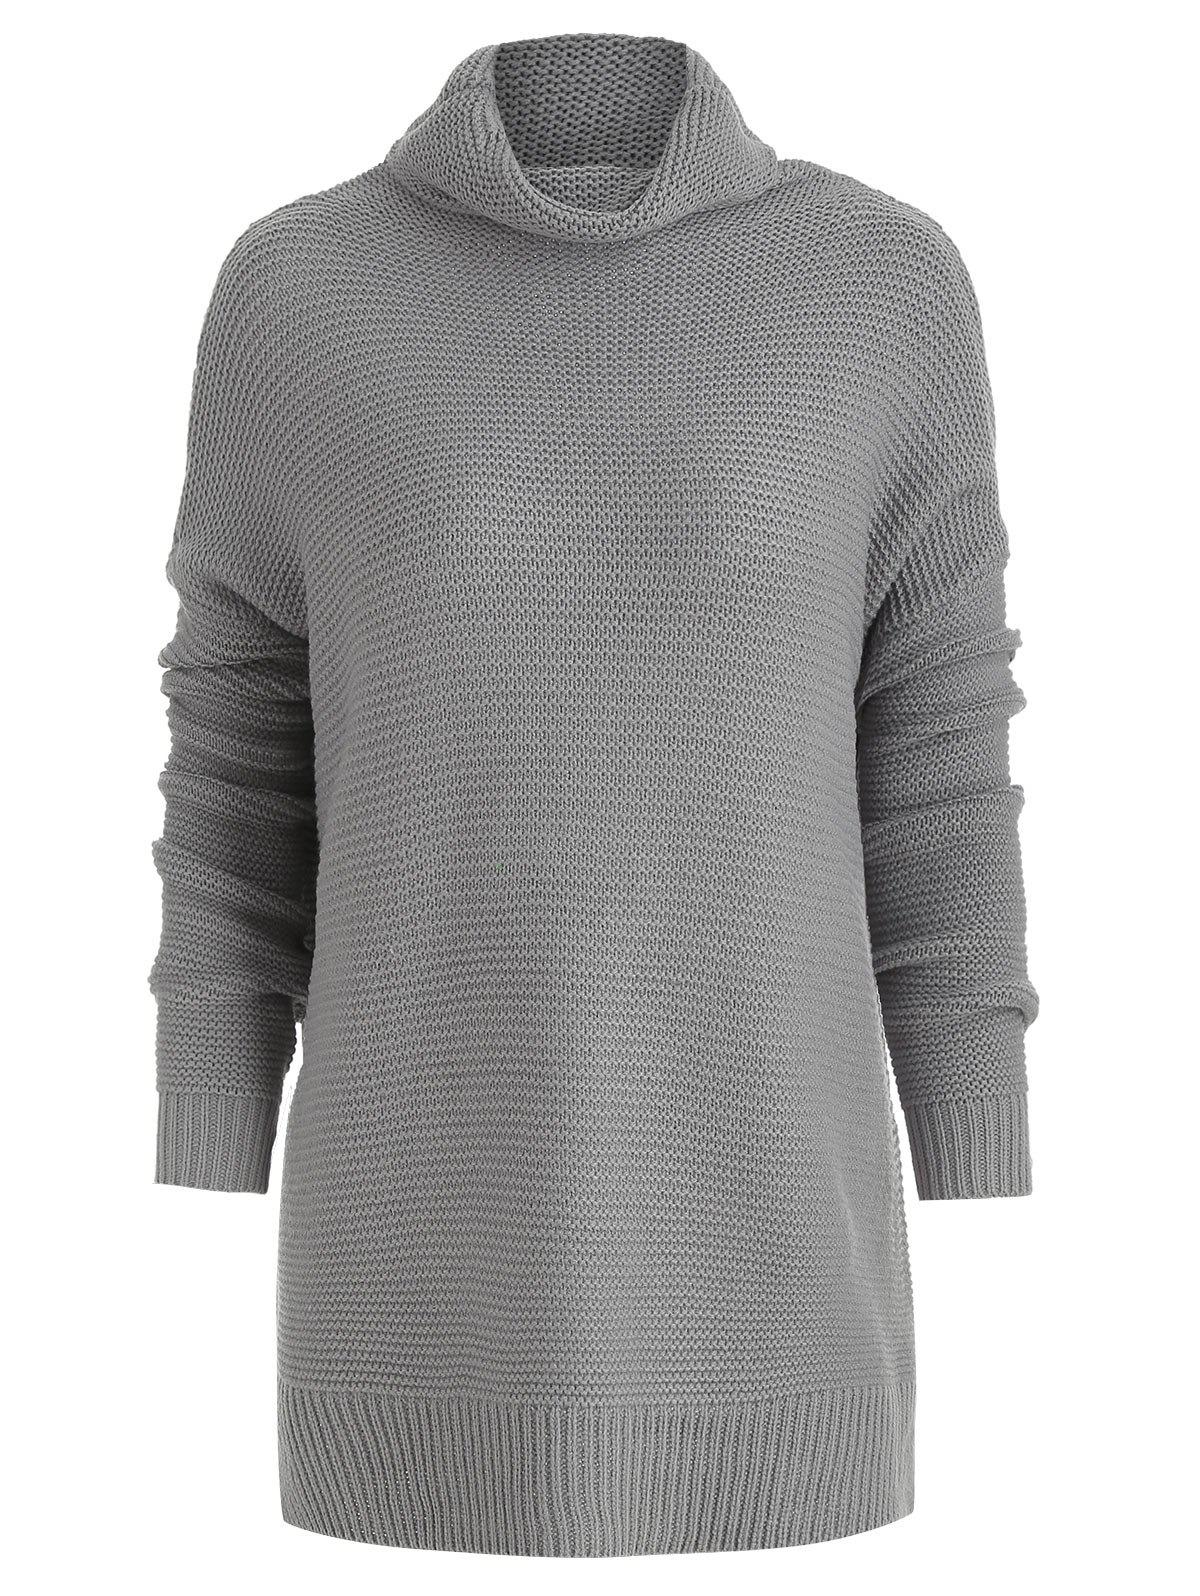 Fancy Drop Shoulder Tunic Turtleneck Sweater